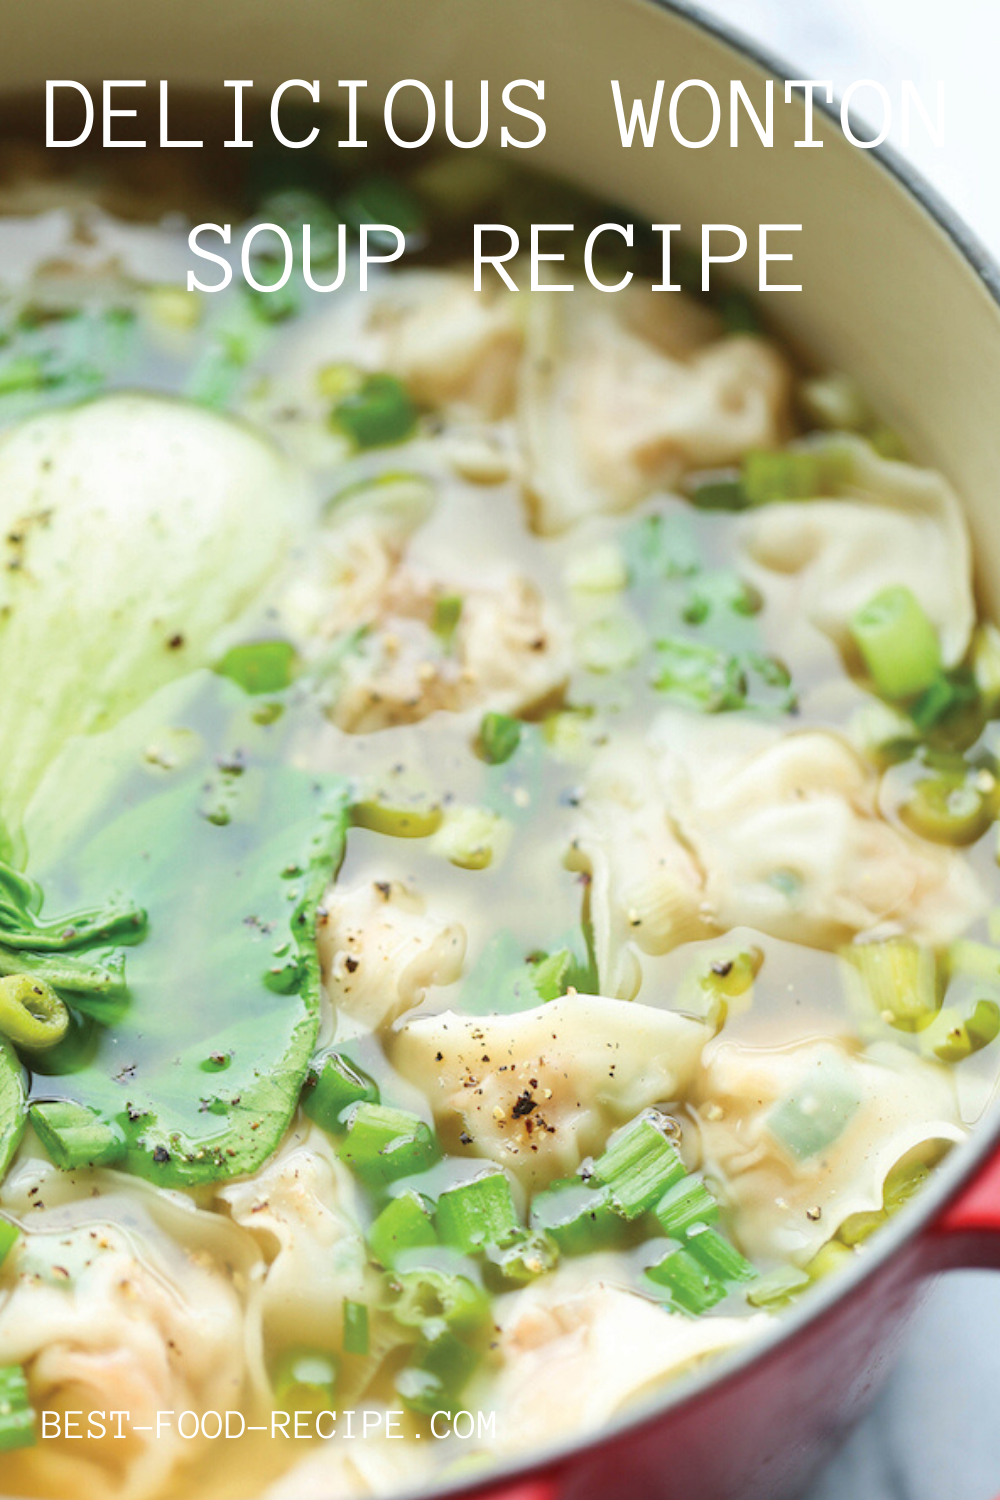 DELICIOUS WONTON SOUP in 2020 (With images) Soup recipes